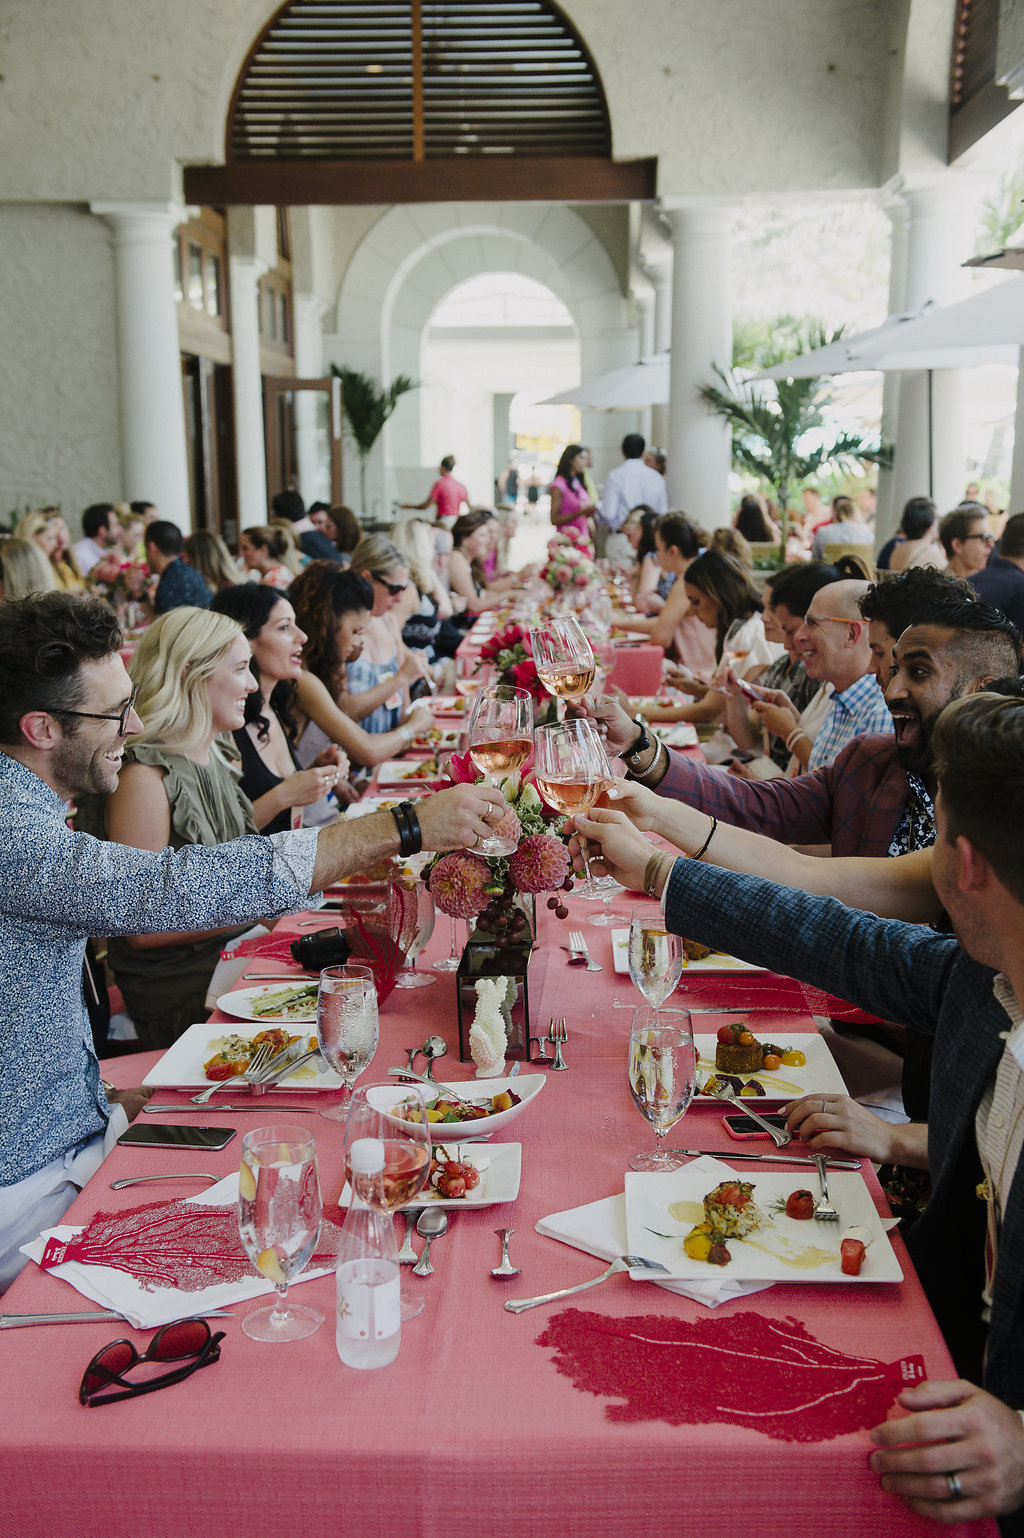 picture of people eating and drinking lunch at a long table in a bright room